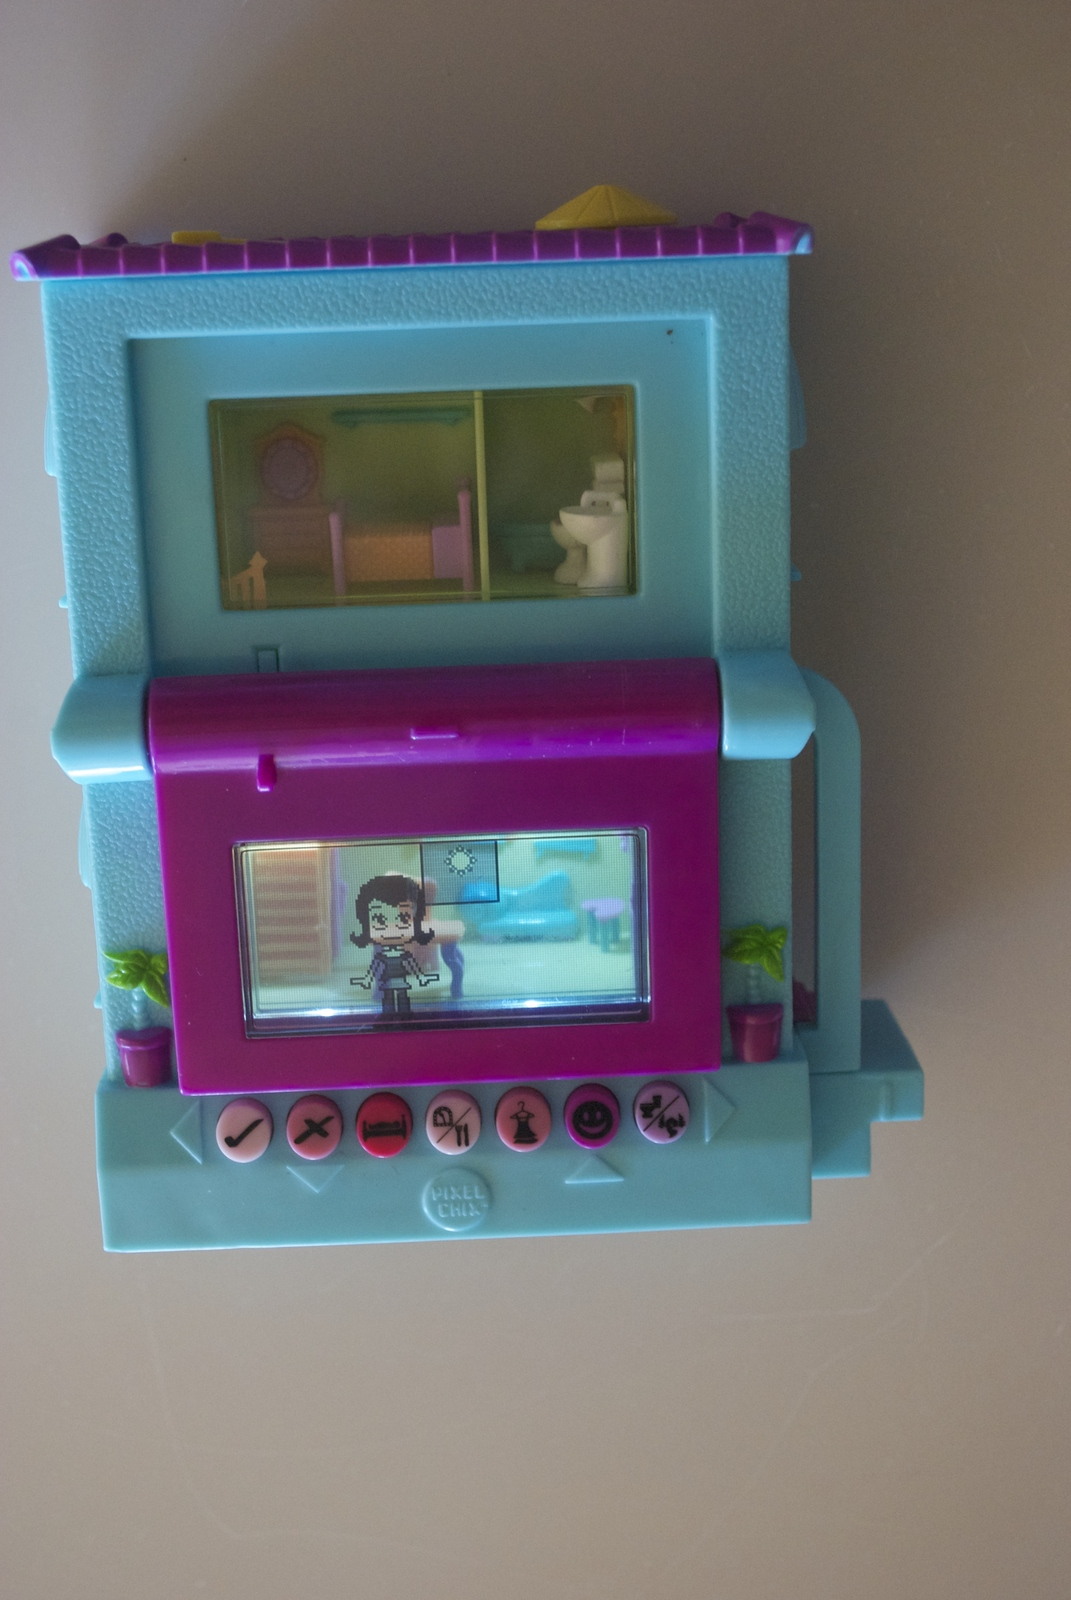 Pixel Chix Pool House Doll Electronic Game Turquoise with Purple